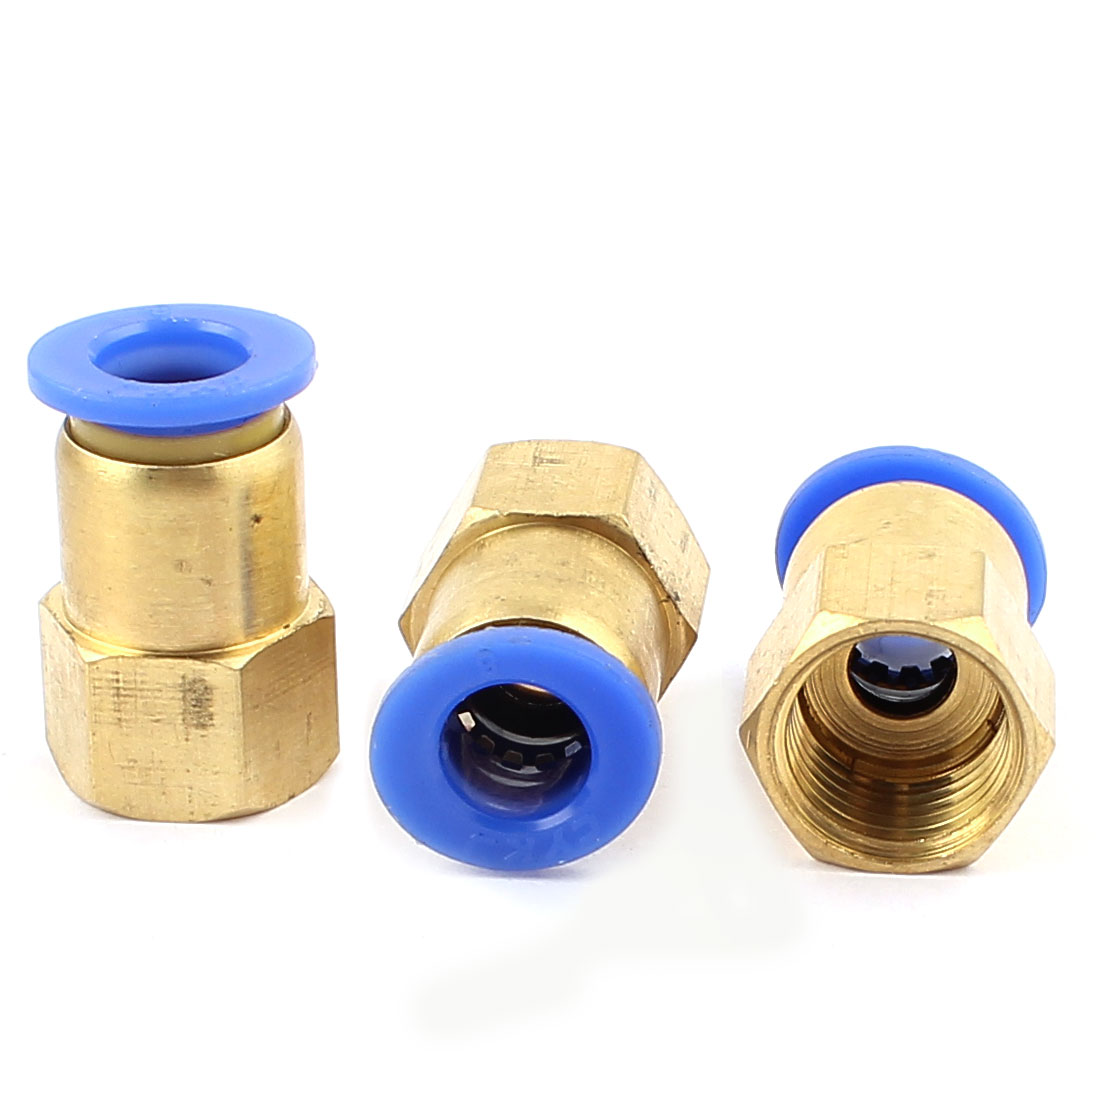 3 Pcs 1/4 BSP Thread to 8mm Push in Pneumatic Air Quick Connect Tube Fitting Coupler